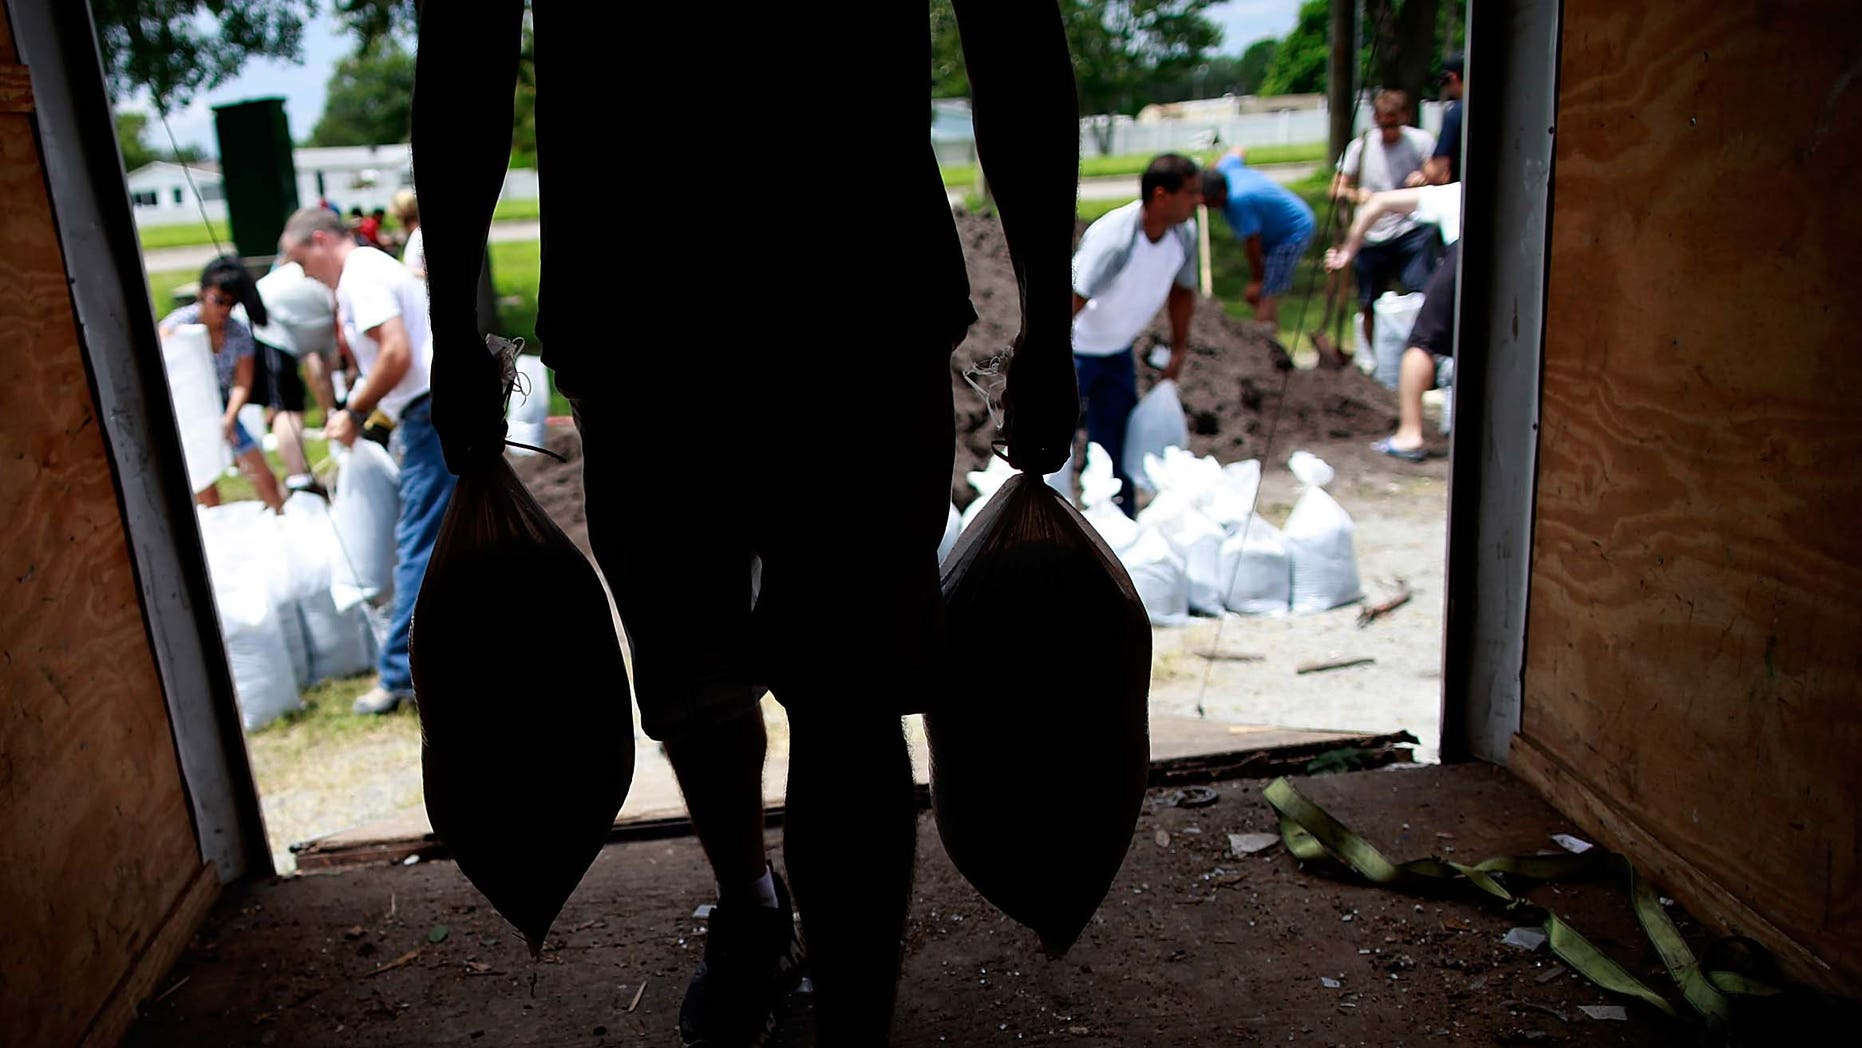 TAMPA, FL - AUGUST 25:  Tampa area residents make preparations for the arrival of Tropical Storm Issac by filling sandbags at a Hillsborough County Public Works Service Center on August 25, 2012 in Tampa, Florida. Tampa area residents wait for Tropical Storm Isaac as they prepare for the Repulican National Convention which will be held in Tampa during the week of August 27th.  (Photo by Tom Pennington/Getty Images)